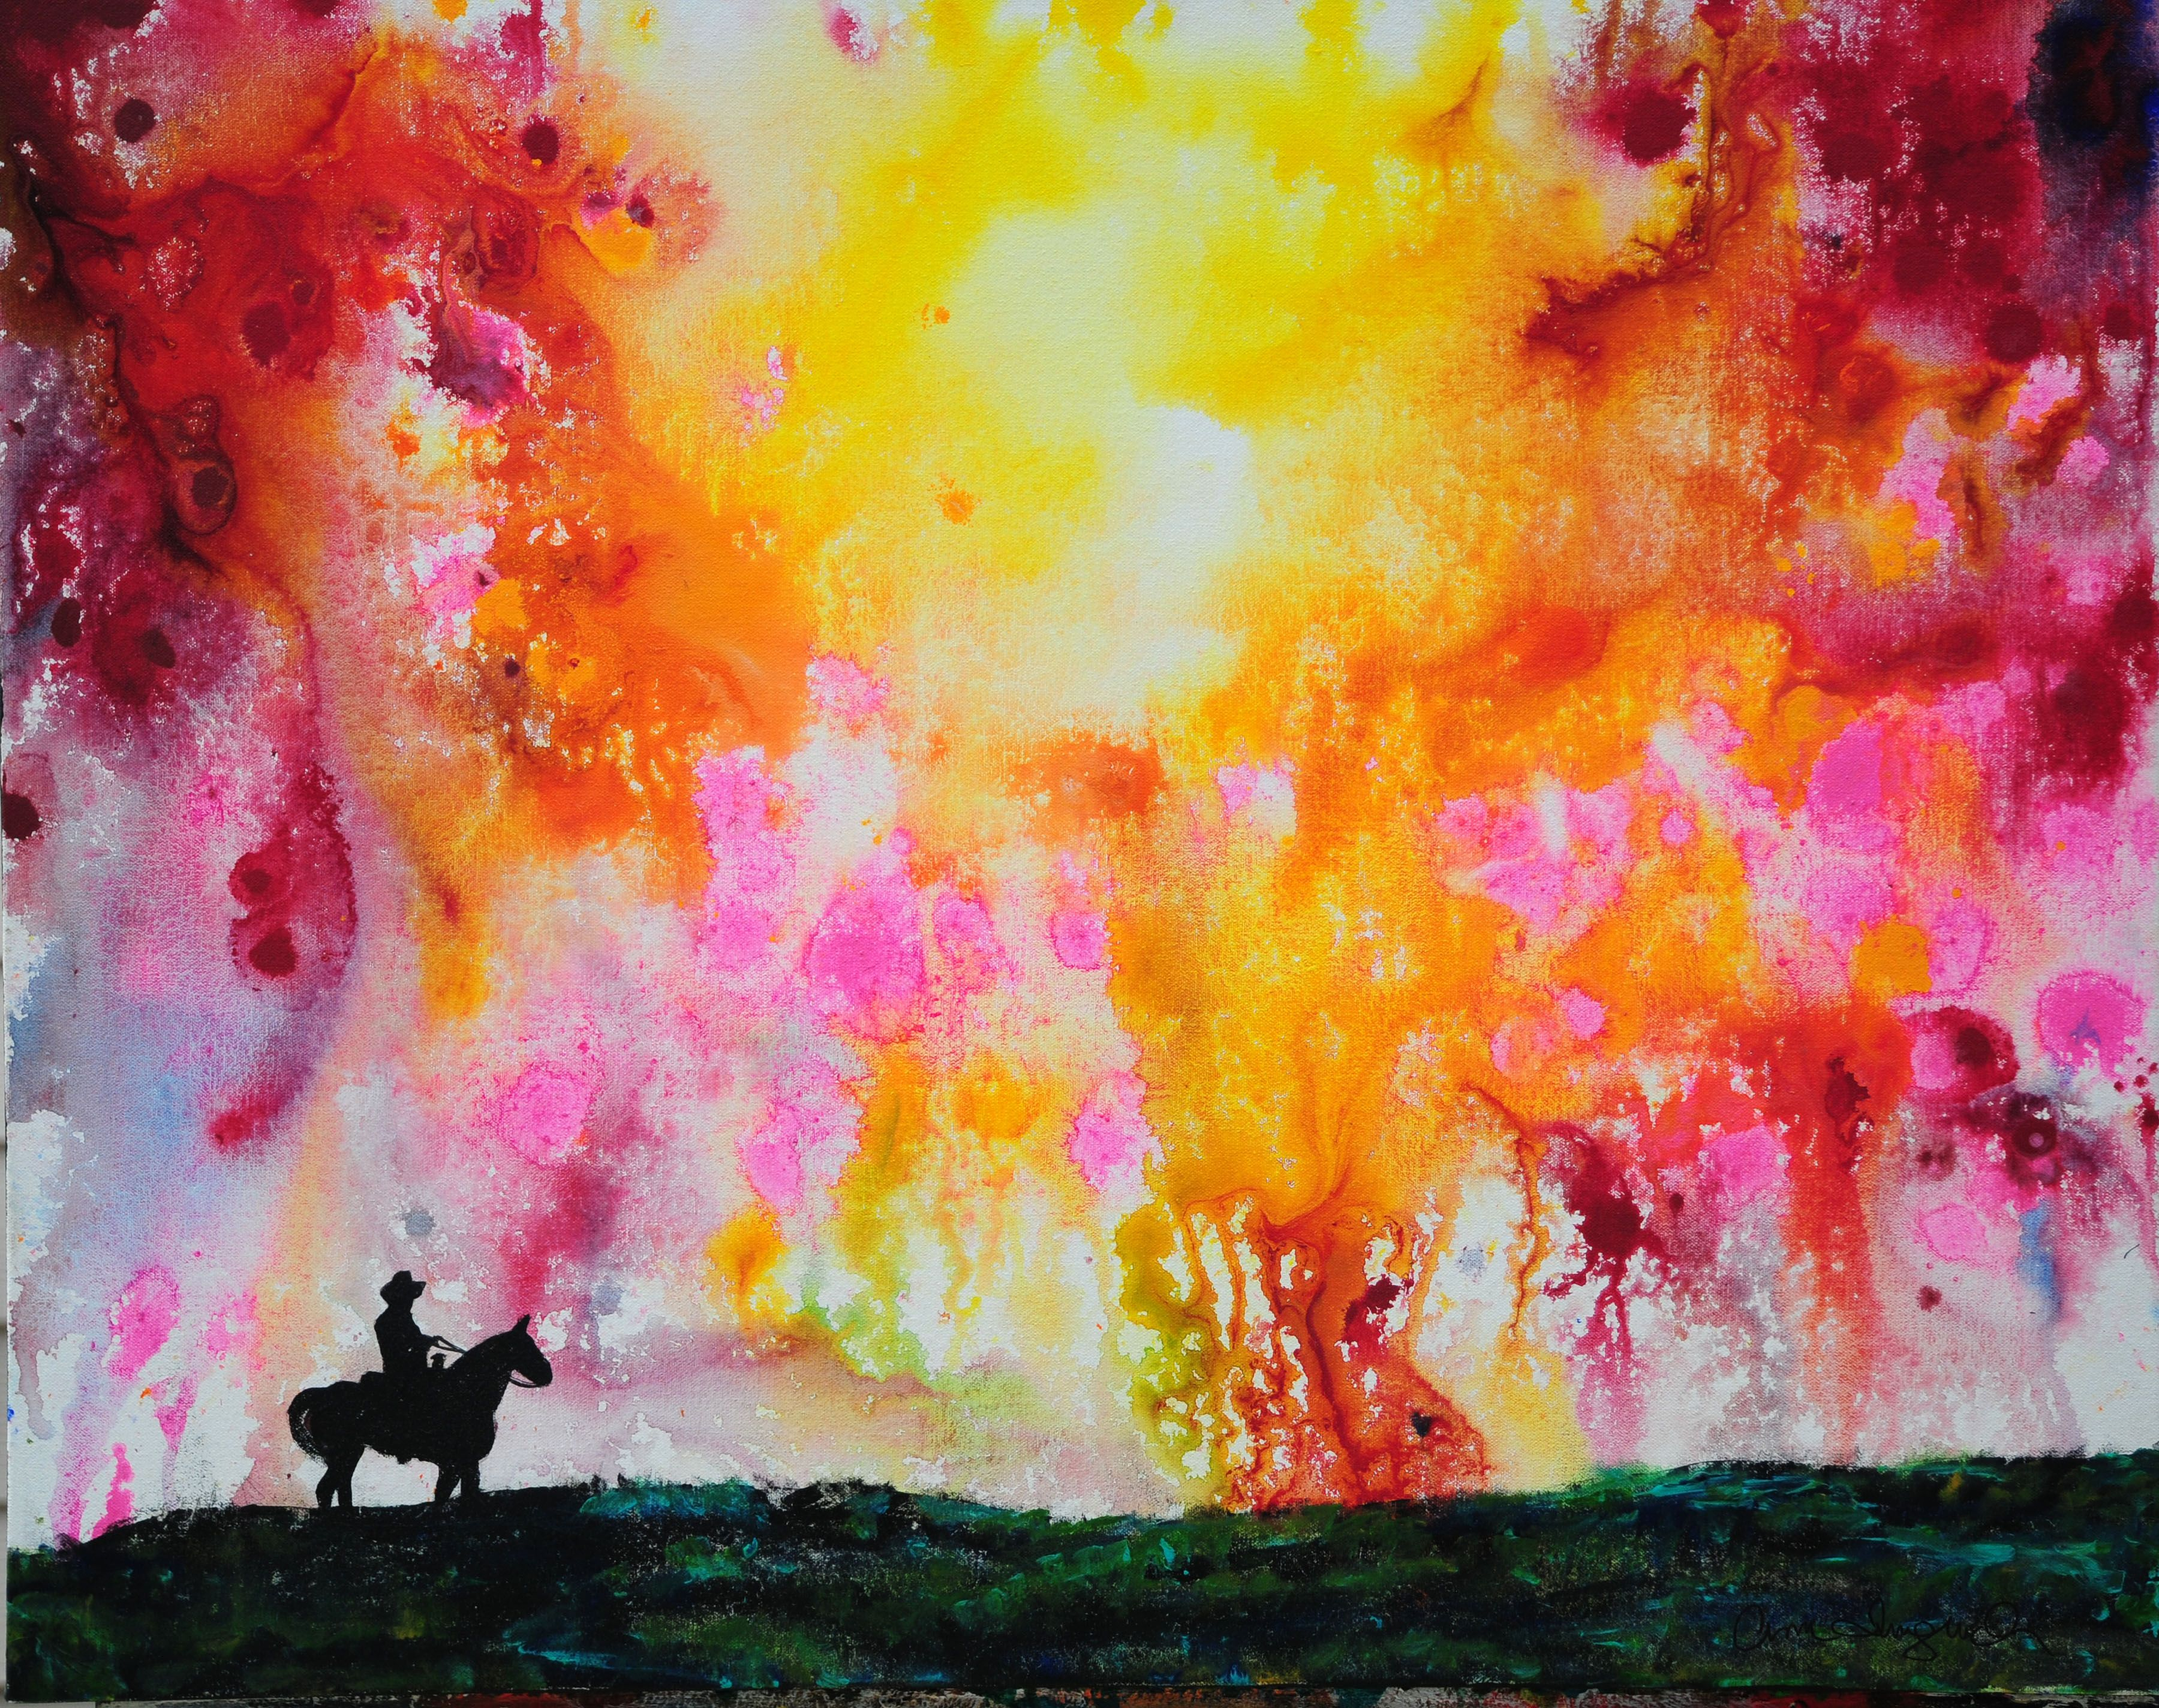 Explosion of Colors in the Western Sky Artwork, Painting